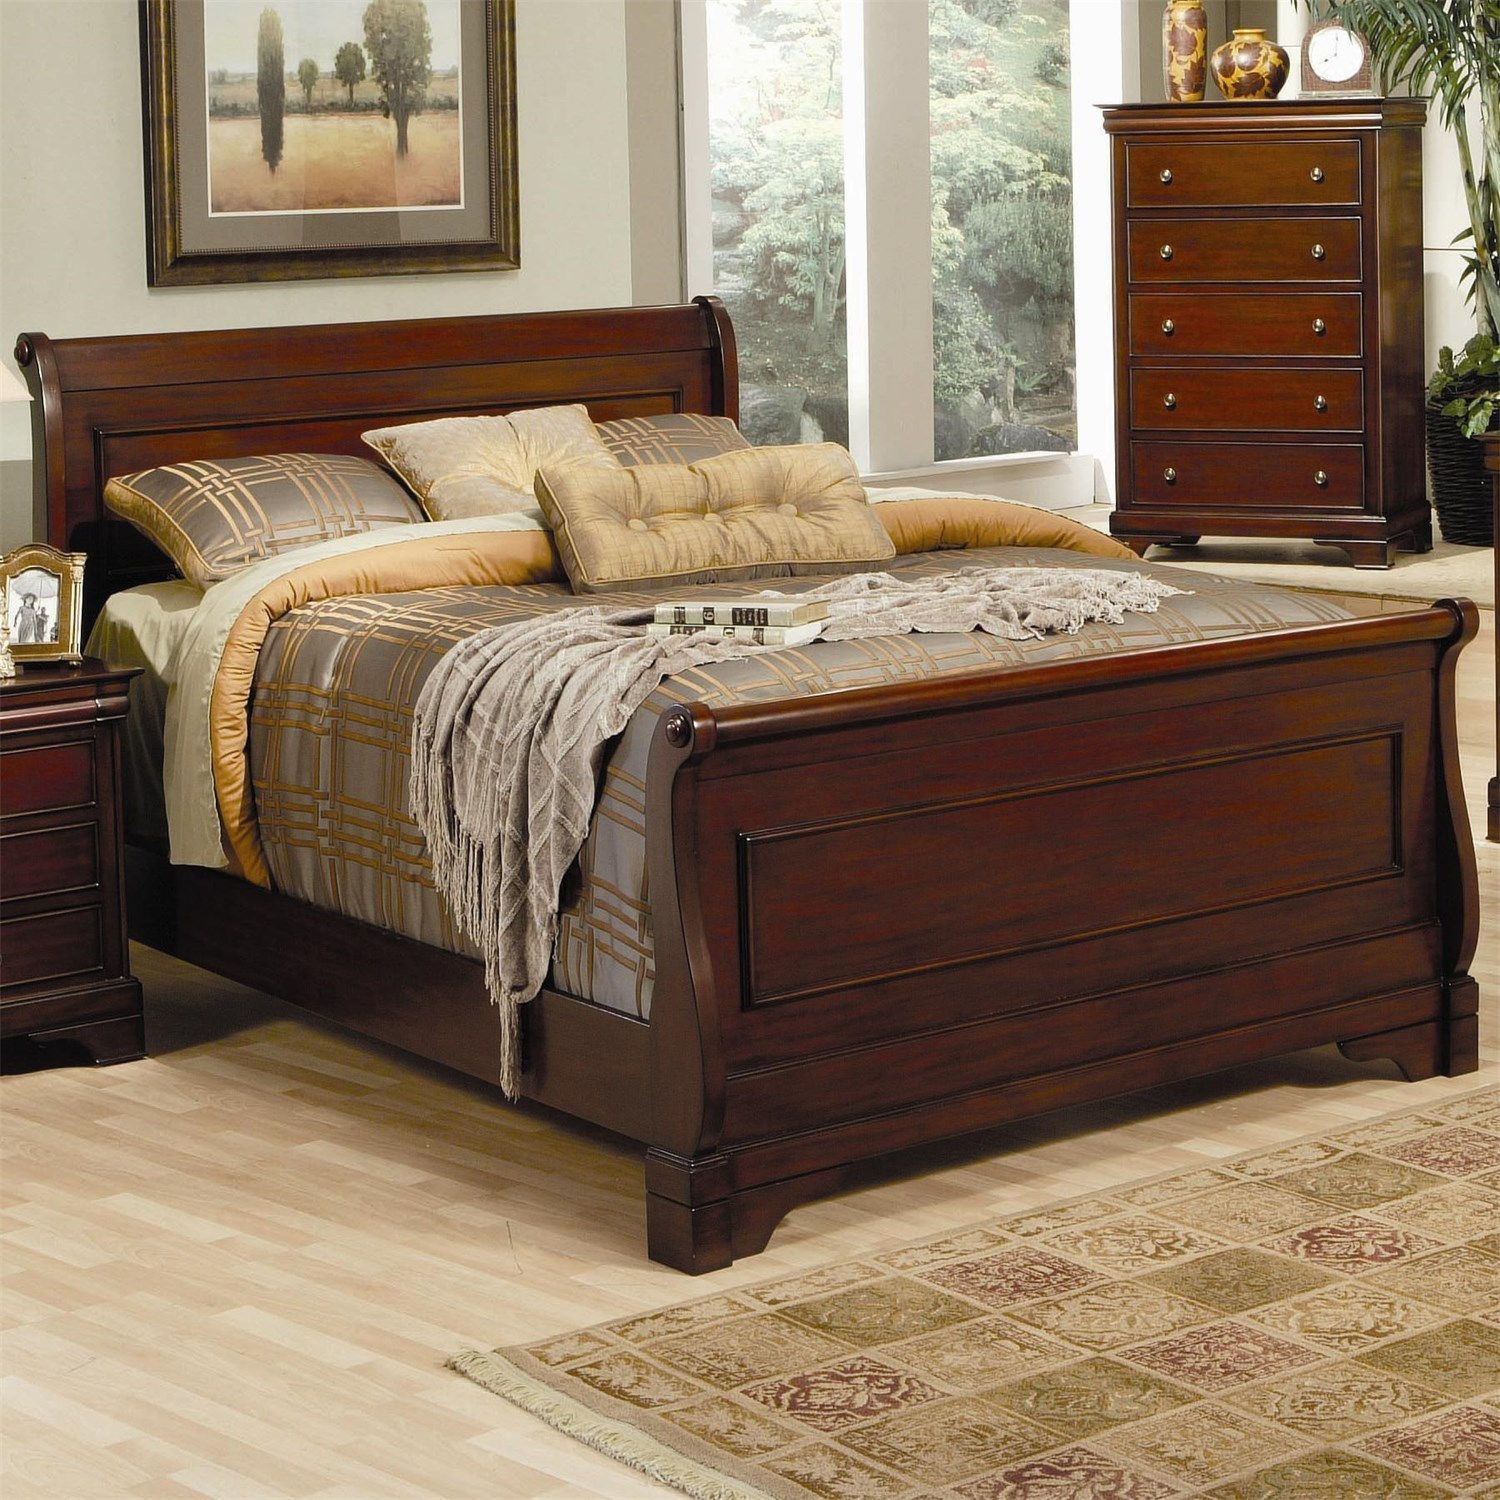 Mahogany Sleigh Bed Queen